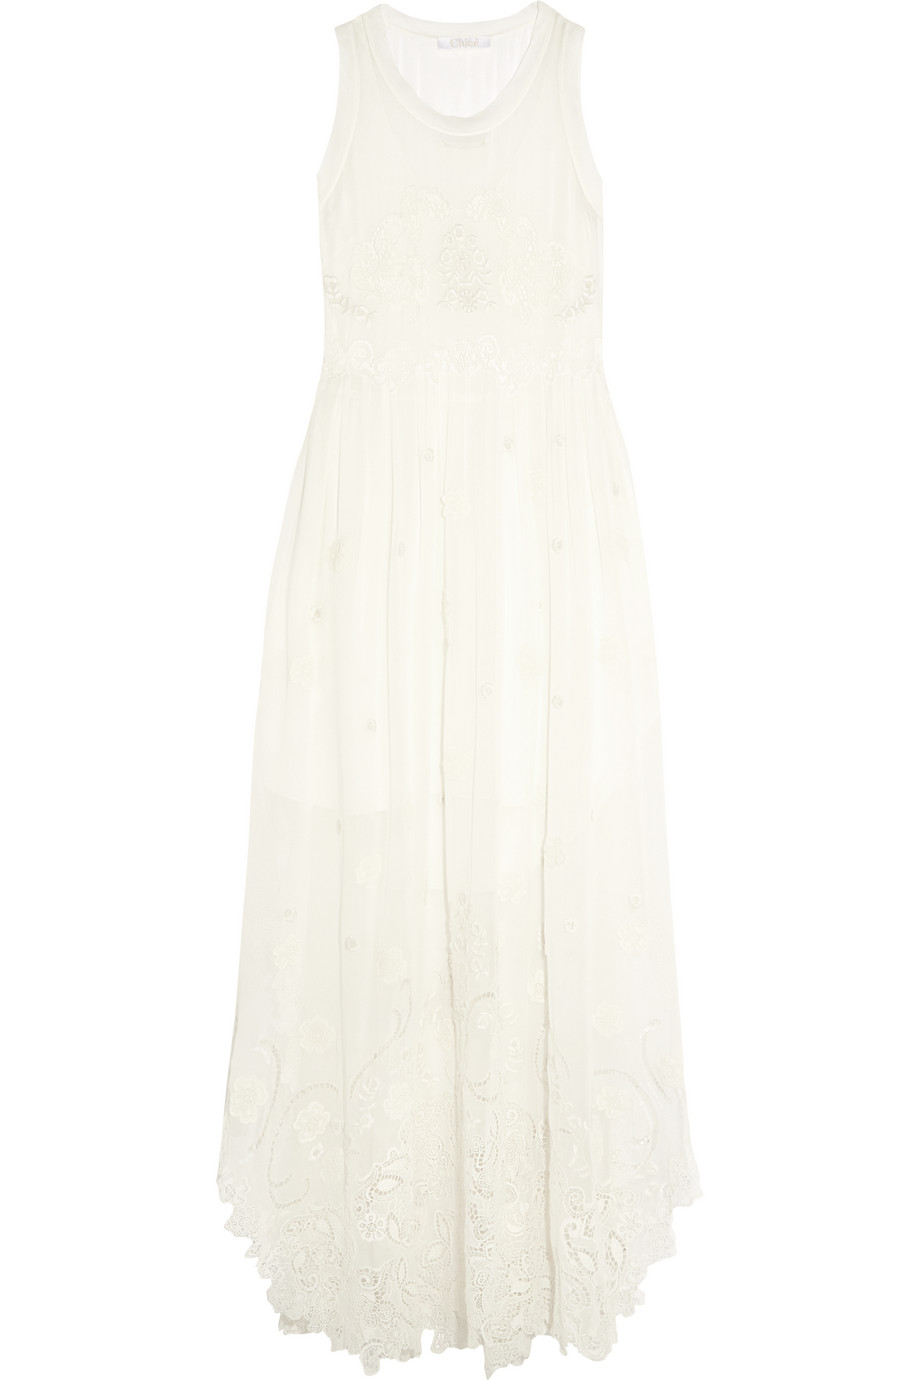 Chloé Embroidered Silk-Mousseline and Guipure Lace Maxi Dress, Ivory, Women's - Embroidered, Size: 40